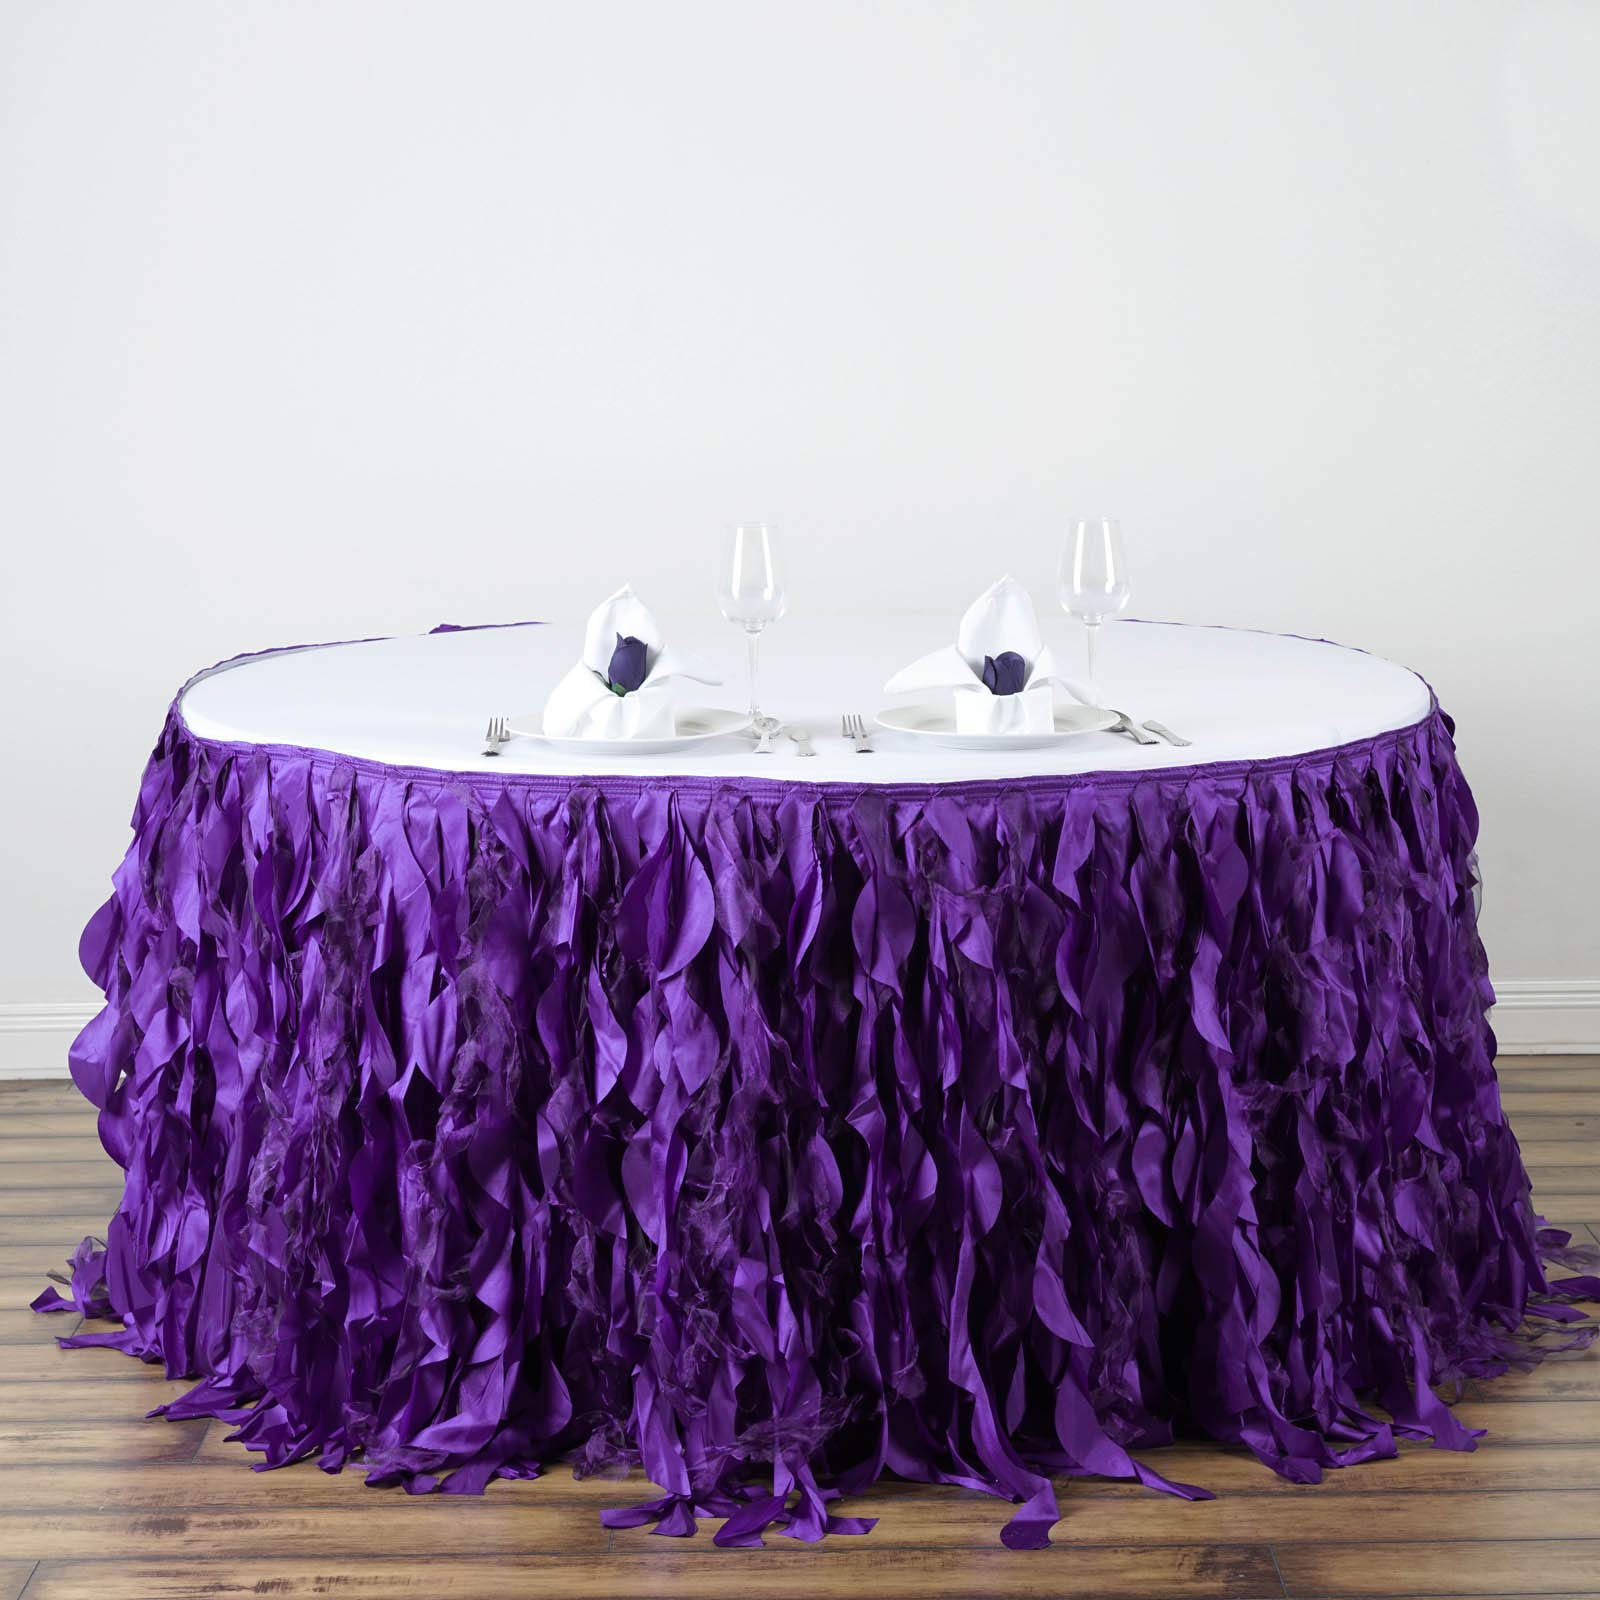 Efavormart 14ft Enchanting Curly Willow Taffeta Table Skirt for Kitchen Dining Catering Wedding Birthday Party Events - Purple by Efavormart.com (Image #4)